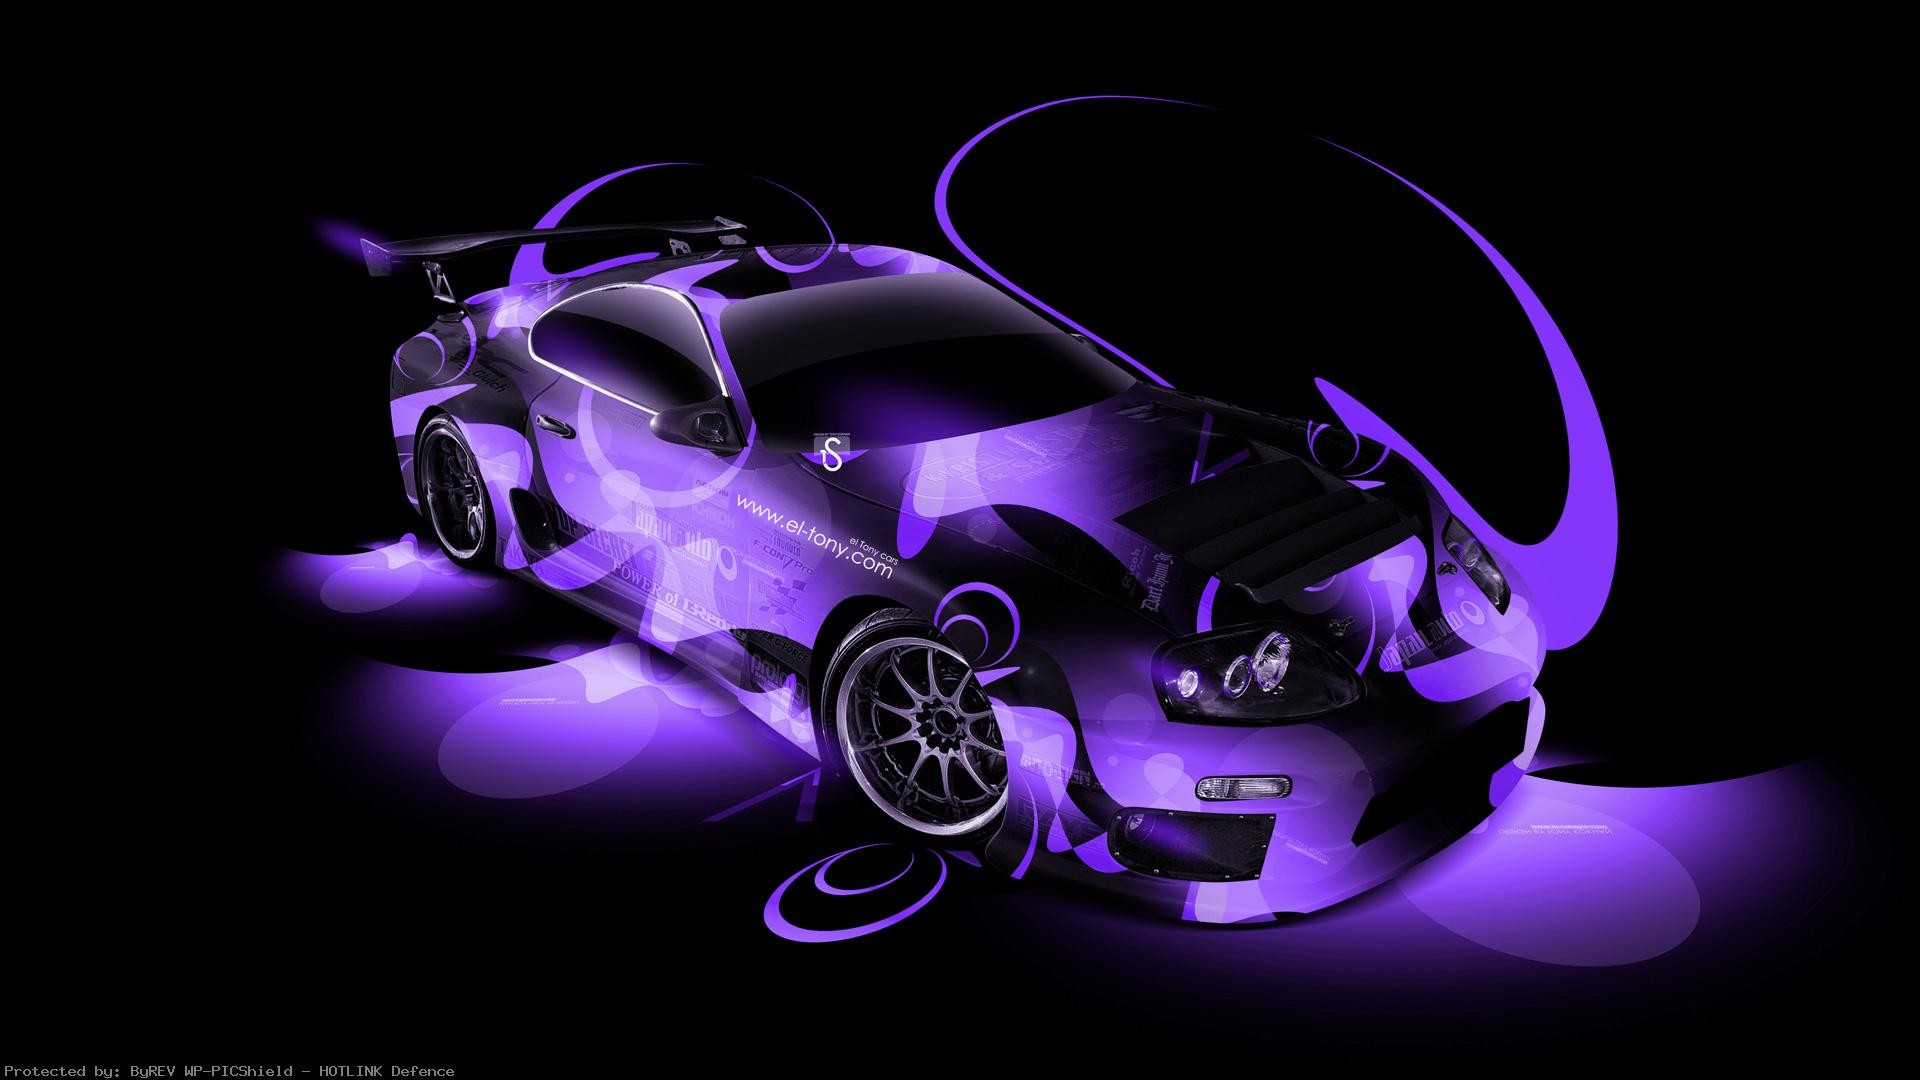 Toyota-Supra-Tuning-JDM-Super-Abstract-Car-Violet-